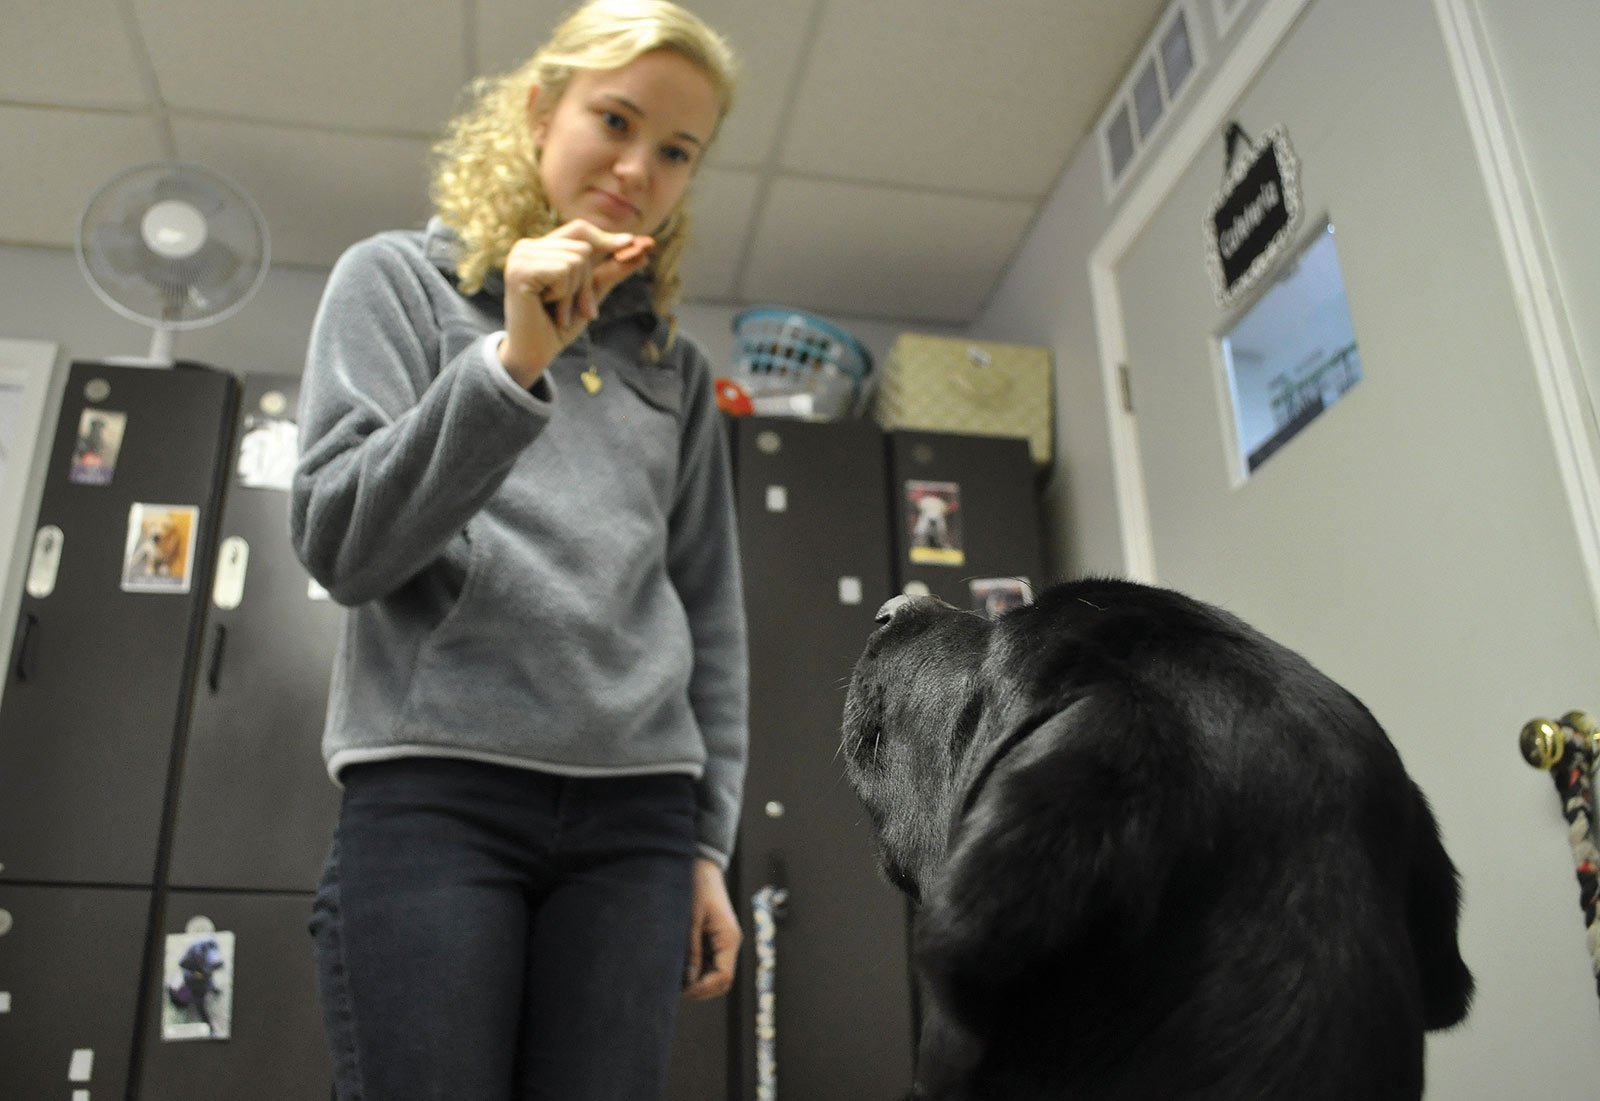 """Labrador and Golden Retrievers are successful service dog breeds because of their energy levels and temperments. """"It's really cool to see the person's demeanor changing as they see how the dog is going to help them,"""" said intern Rachael McGahee."""